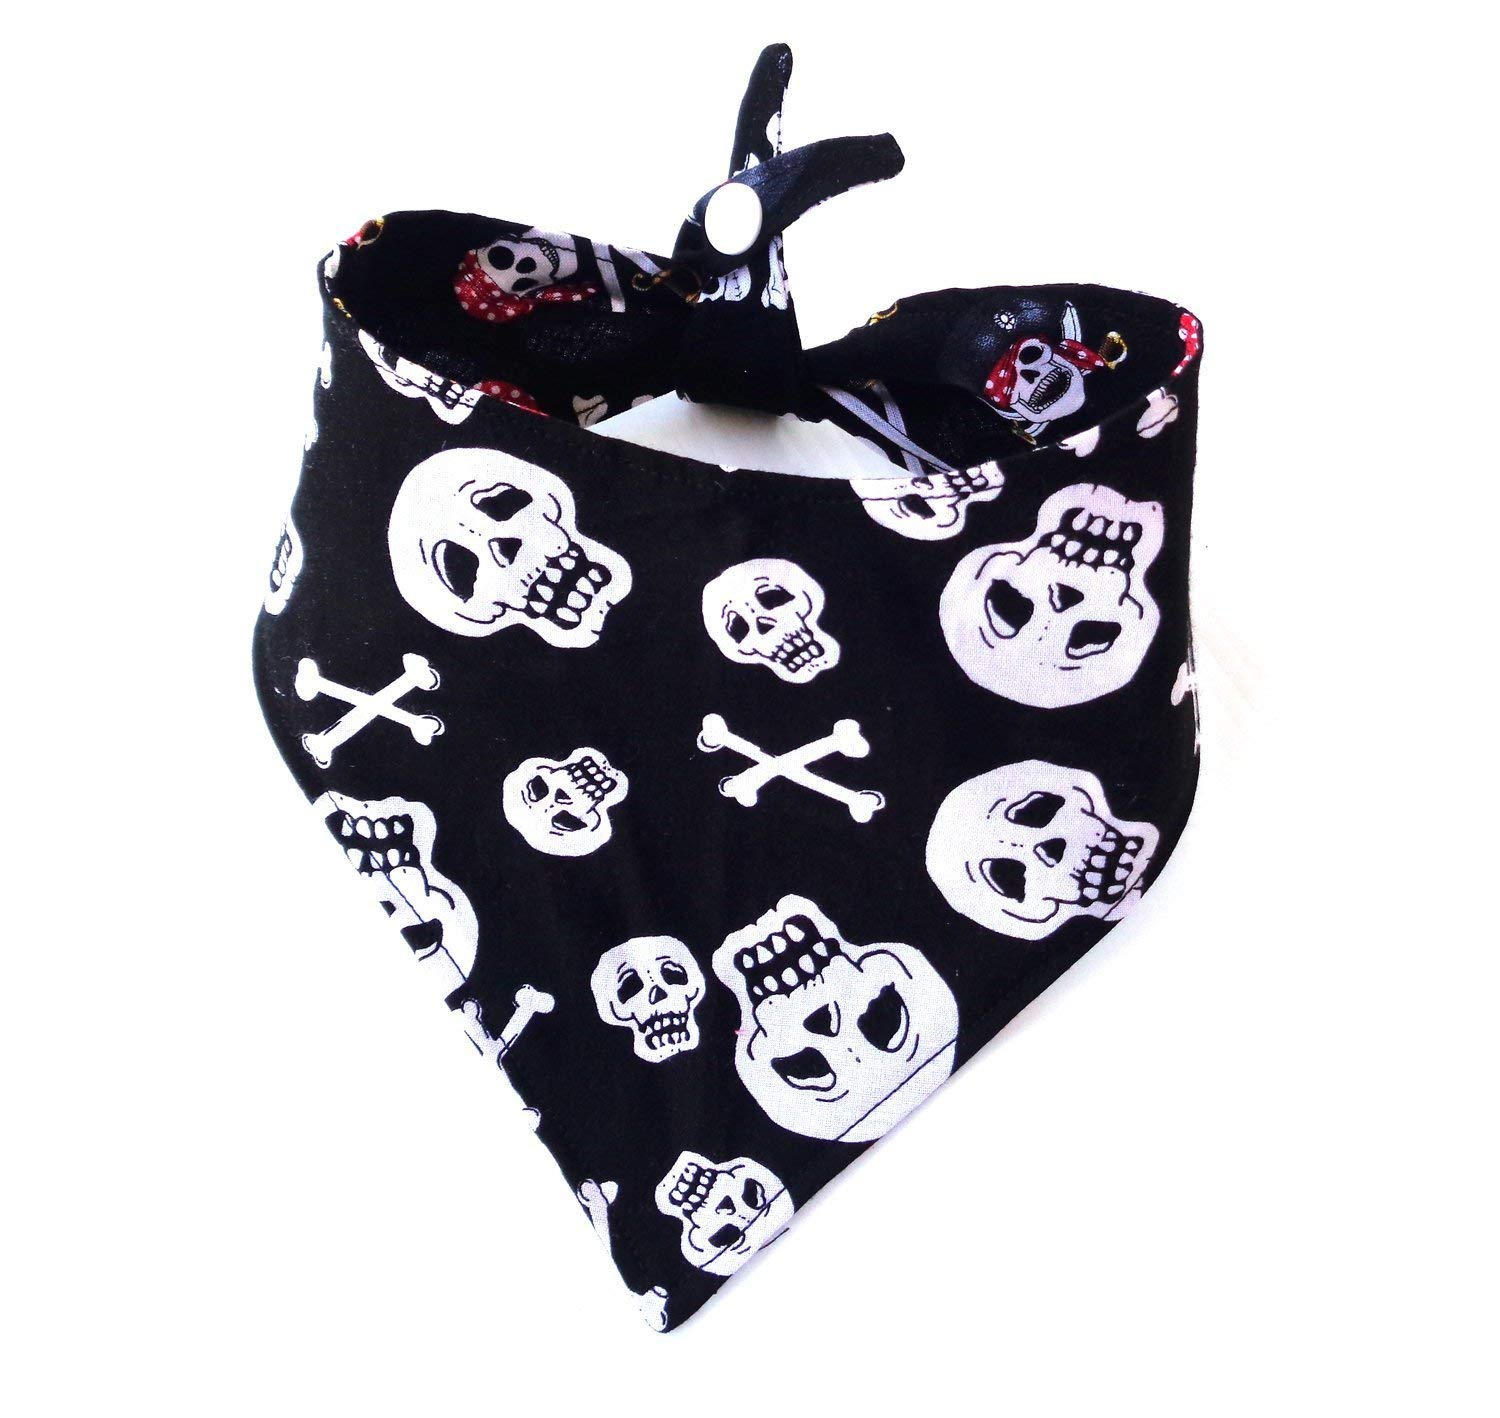 Reversible Skull and CrossBones Pirate Prints dog bandanna with Tie On and Snap Closure Summer All Year Halloween Day of the Dead Petwear Neckwear